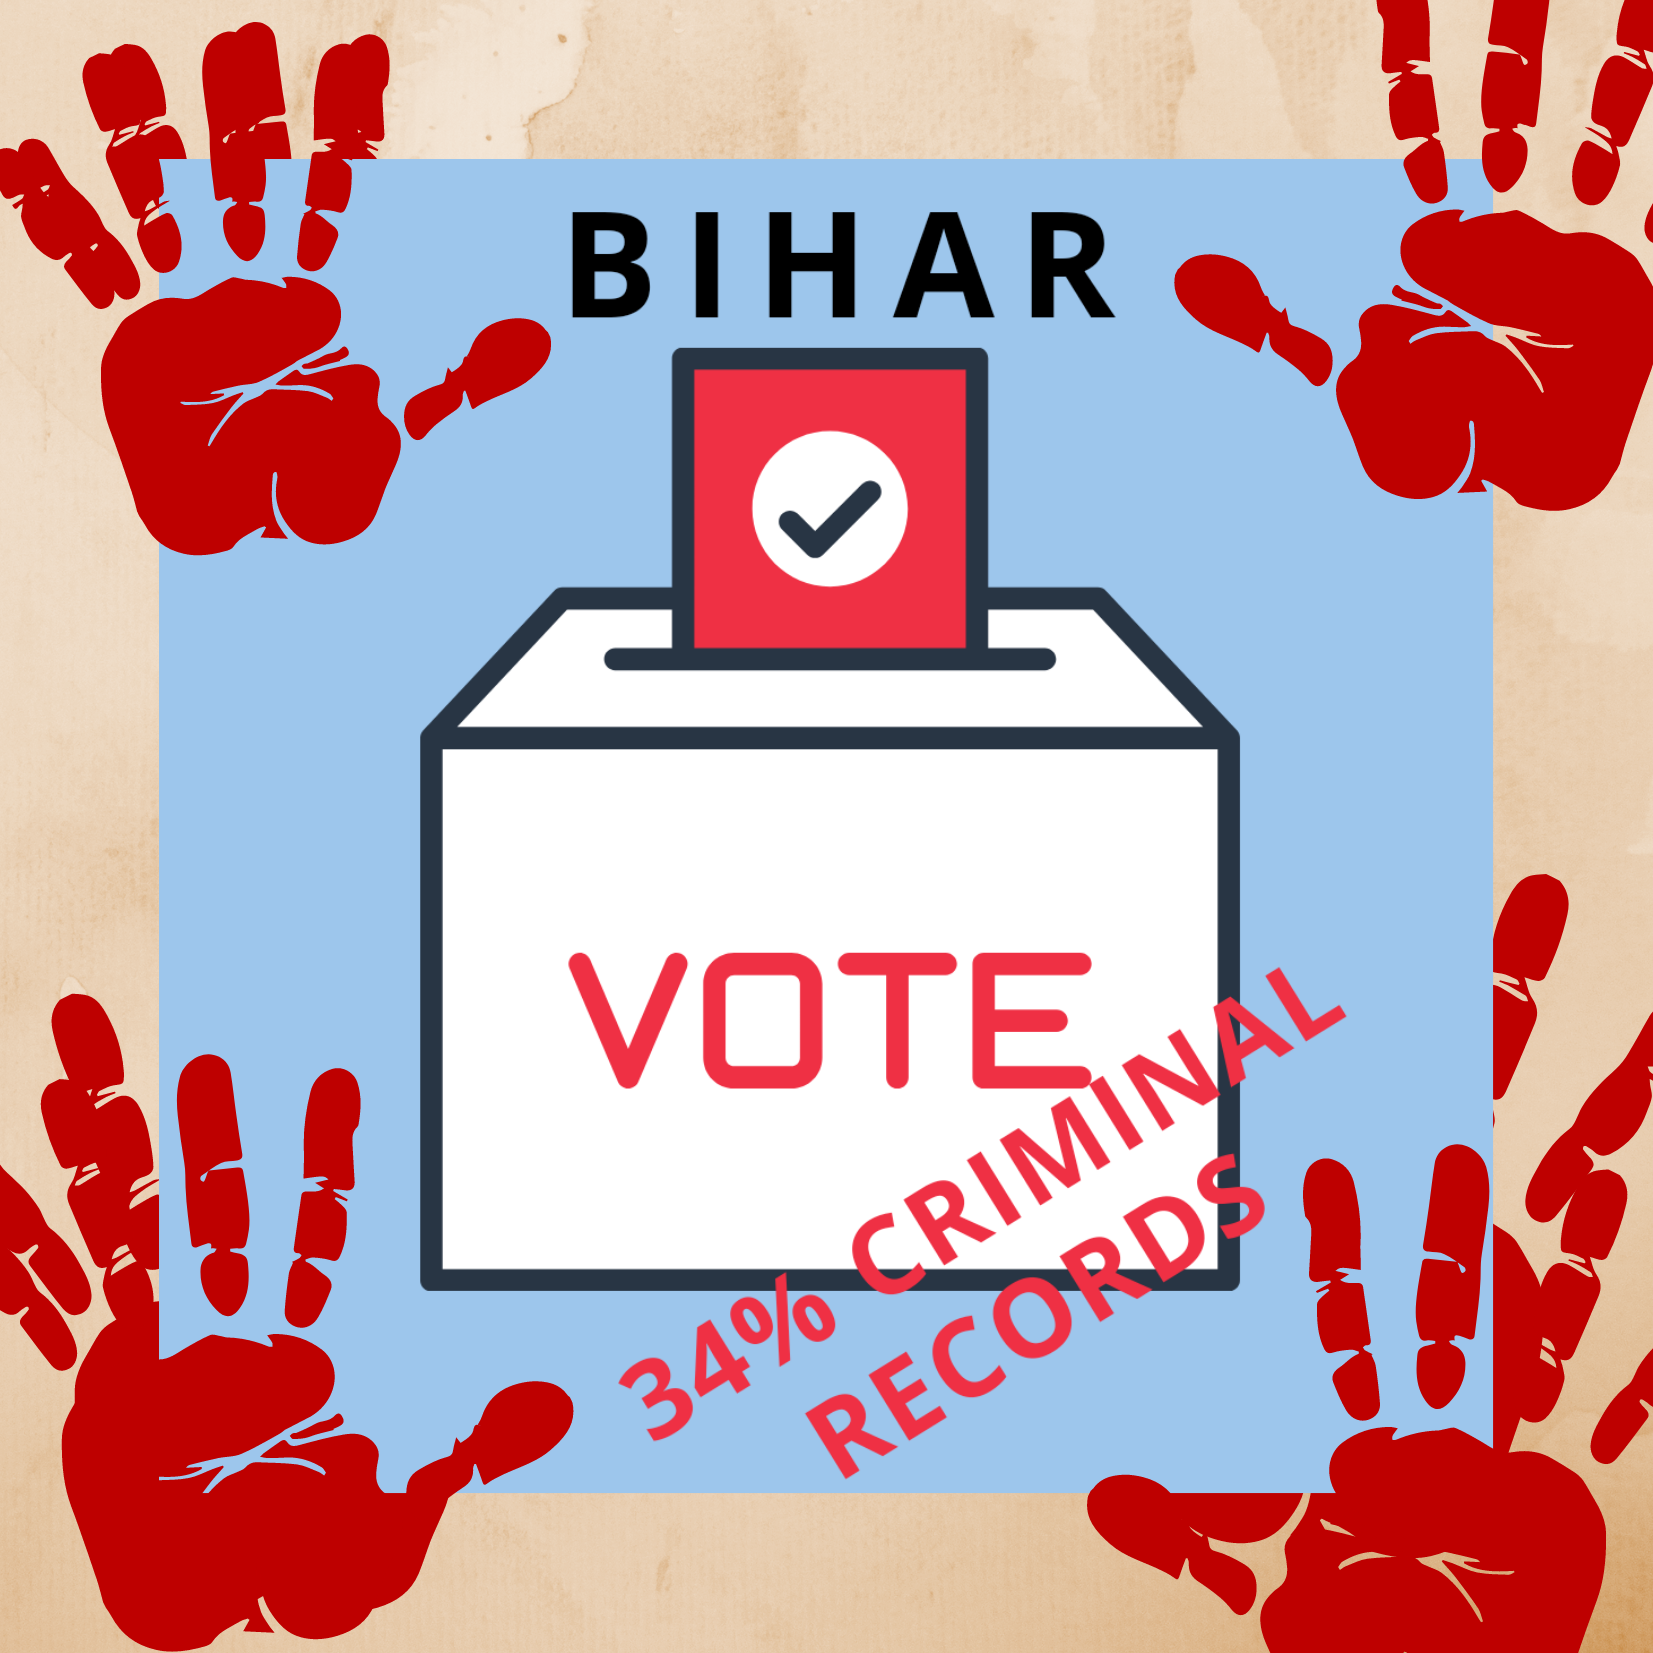 34% WITH CRIMINAL RECORDS IN BIHAR POLL, PARTIES MOCK AT SC ORDER